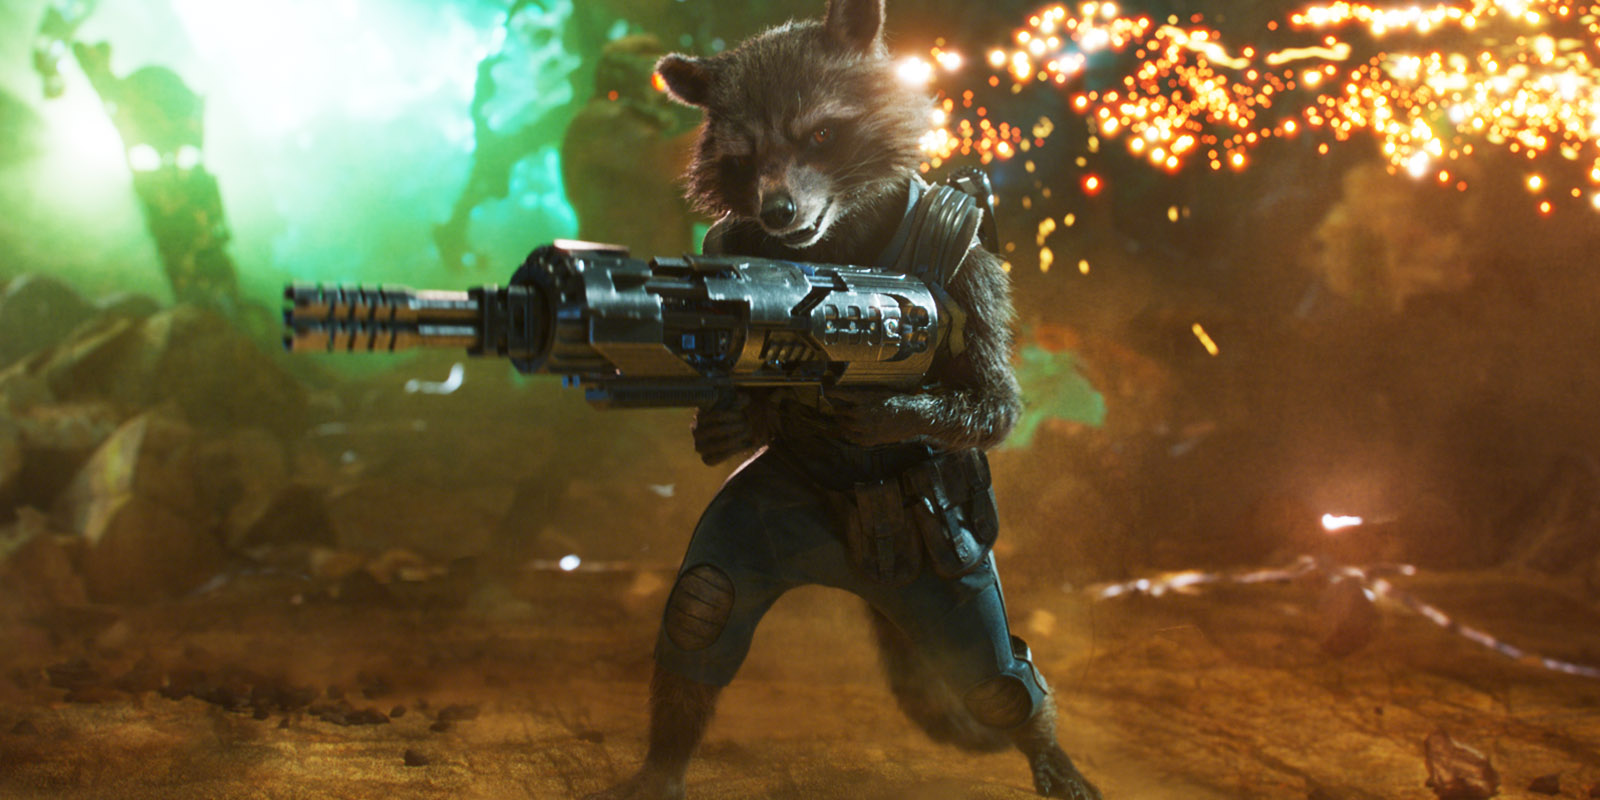 Guardians of the galaxy 2 39 s extended super bowl trailer - Guardians of the galaxy 2 8k ...